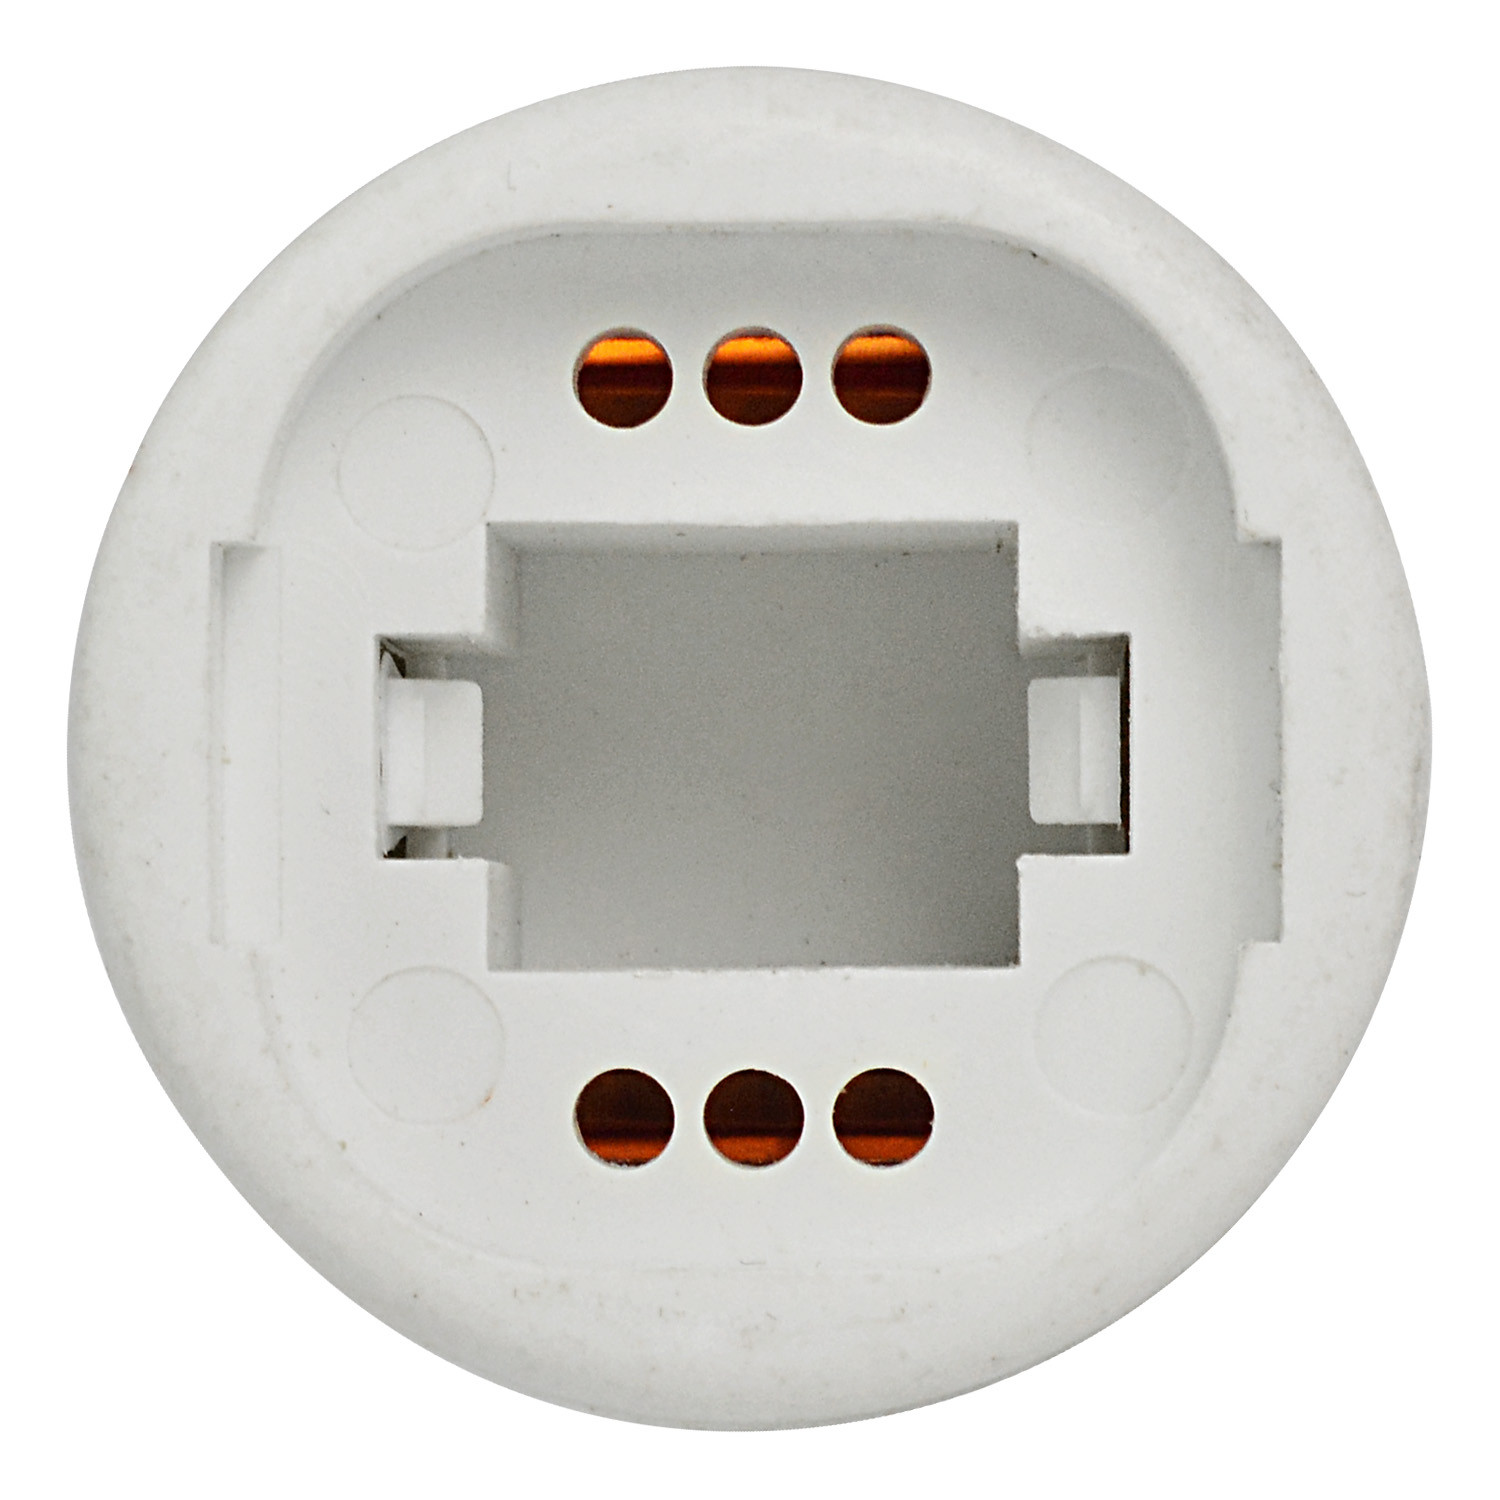 mengs e27 to g24 led light bulb lamp socket adapter extender holder